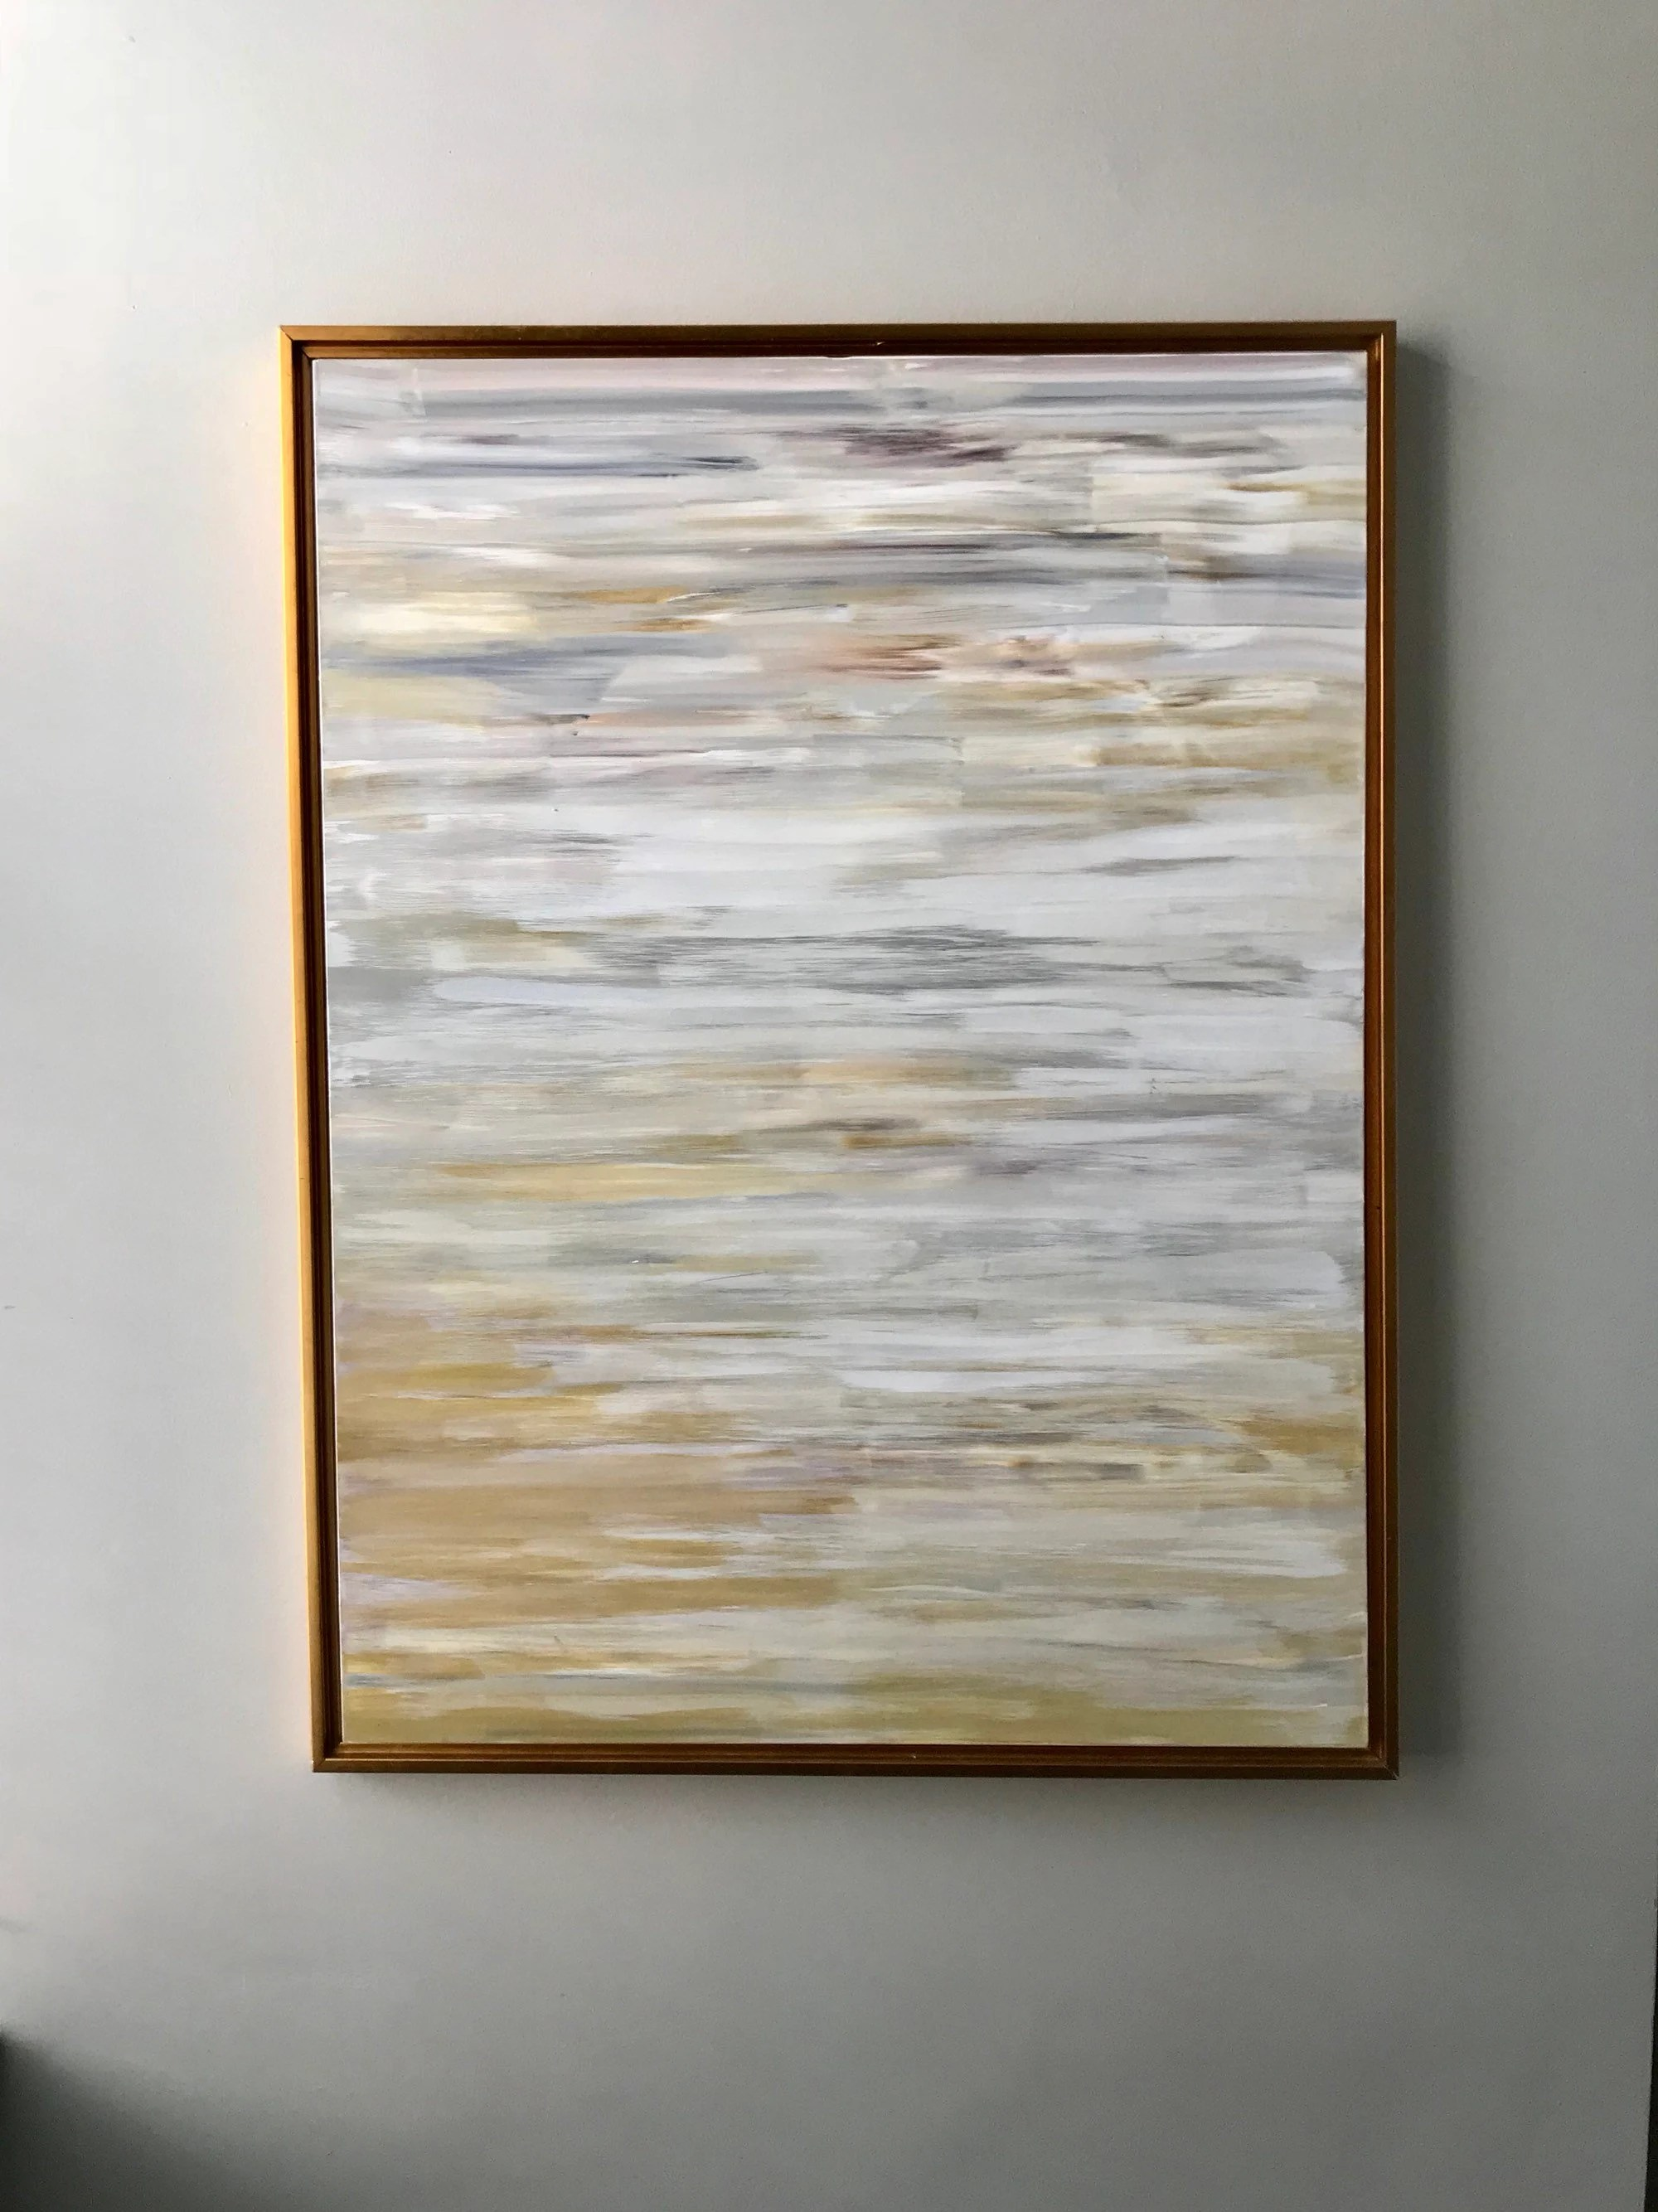 Foto 30x40 Large Original Abstract Modern Wall Art 30x40 Gold Grey Neutral Vertical Modern Frame Included